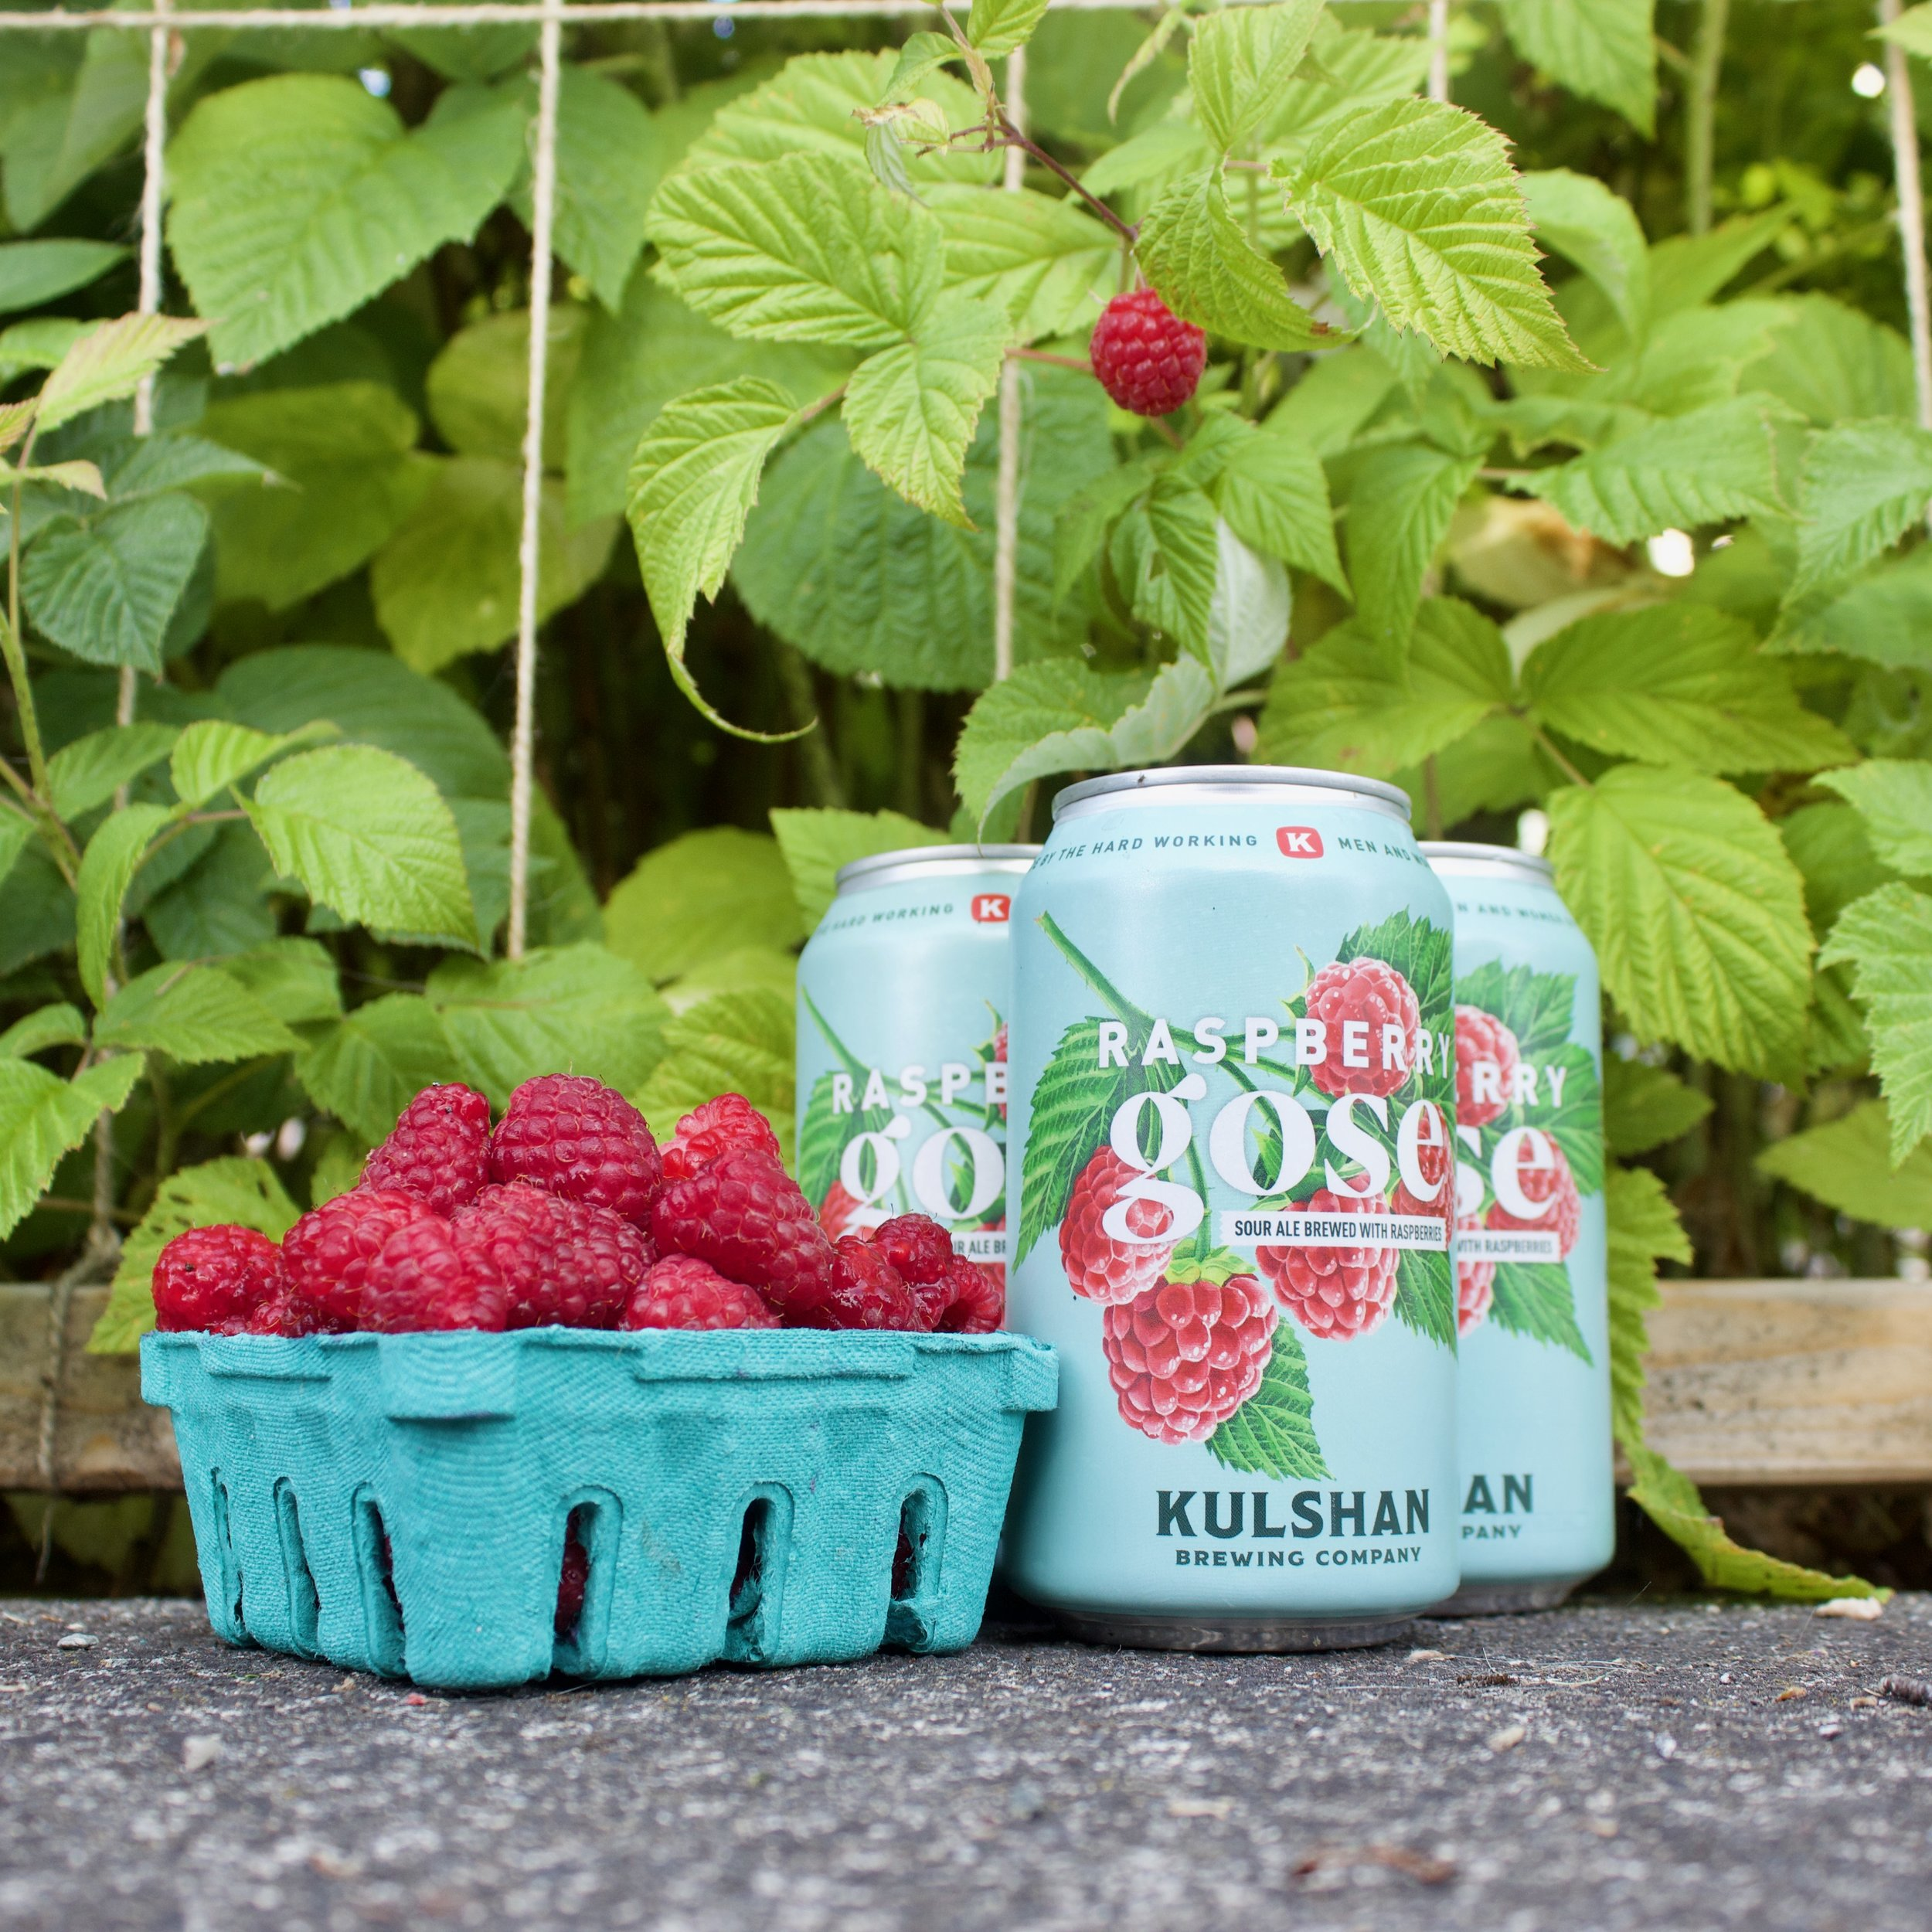 Raspberry Gose from Kulshan Brewing Company